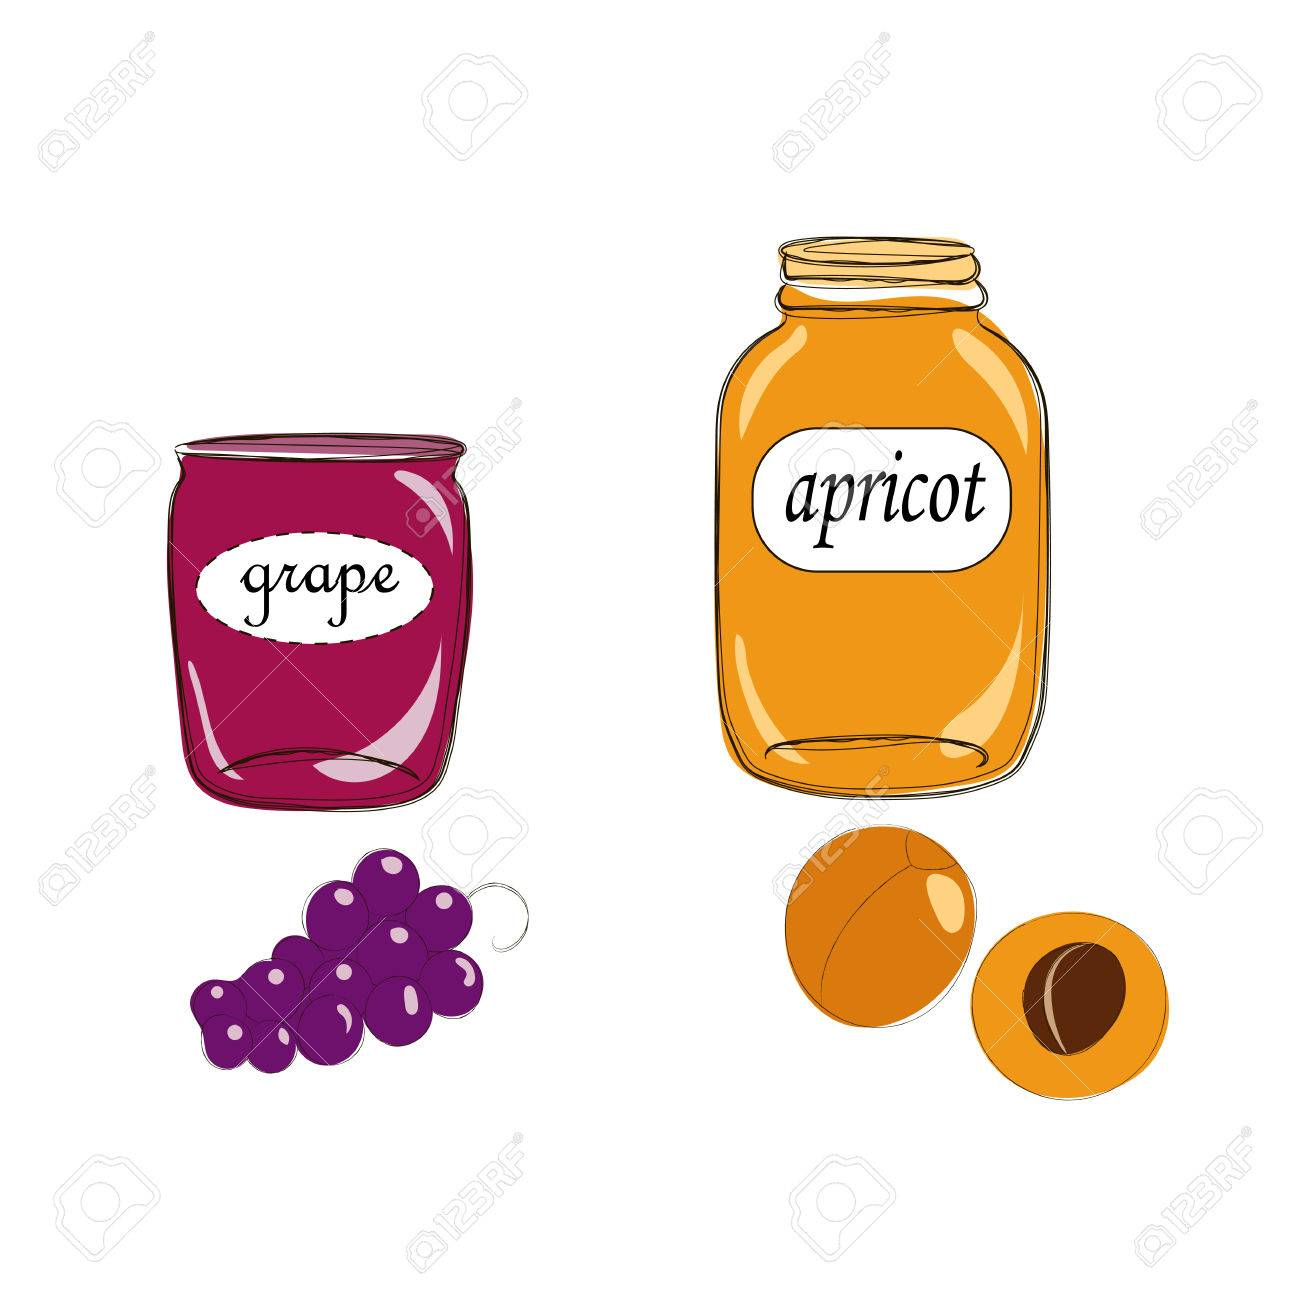 Hand drawn cartoon style jars with natural organic homemade grape and apricot jelly. Cute labels